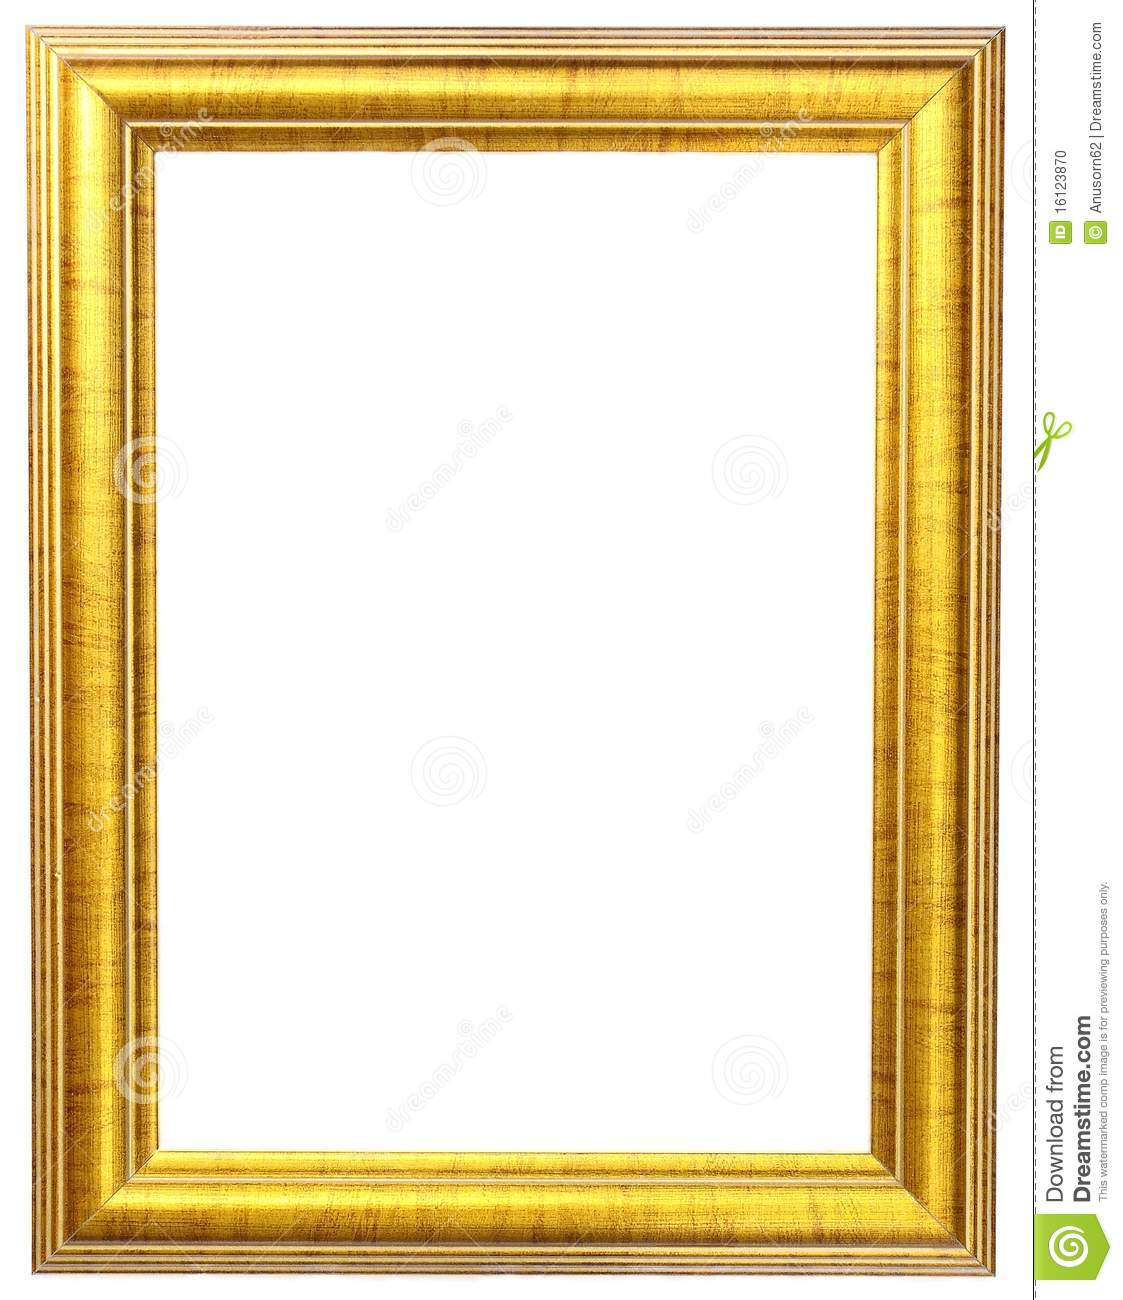 More similar stock images of ` Gold picture frame `